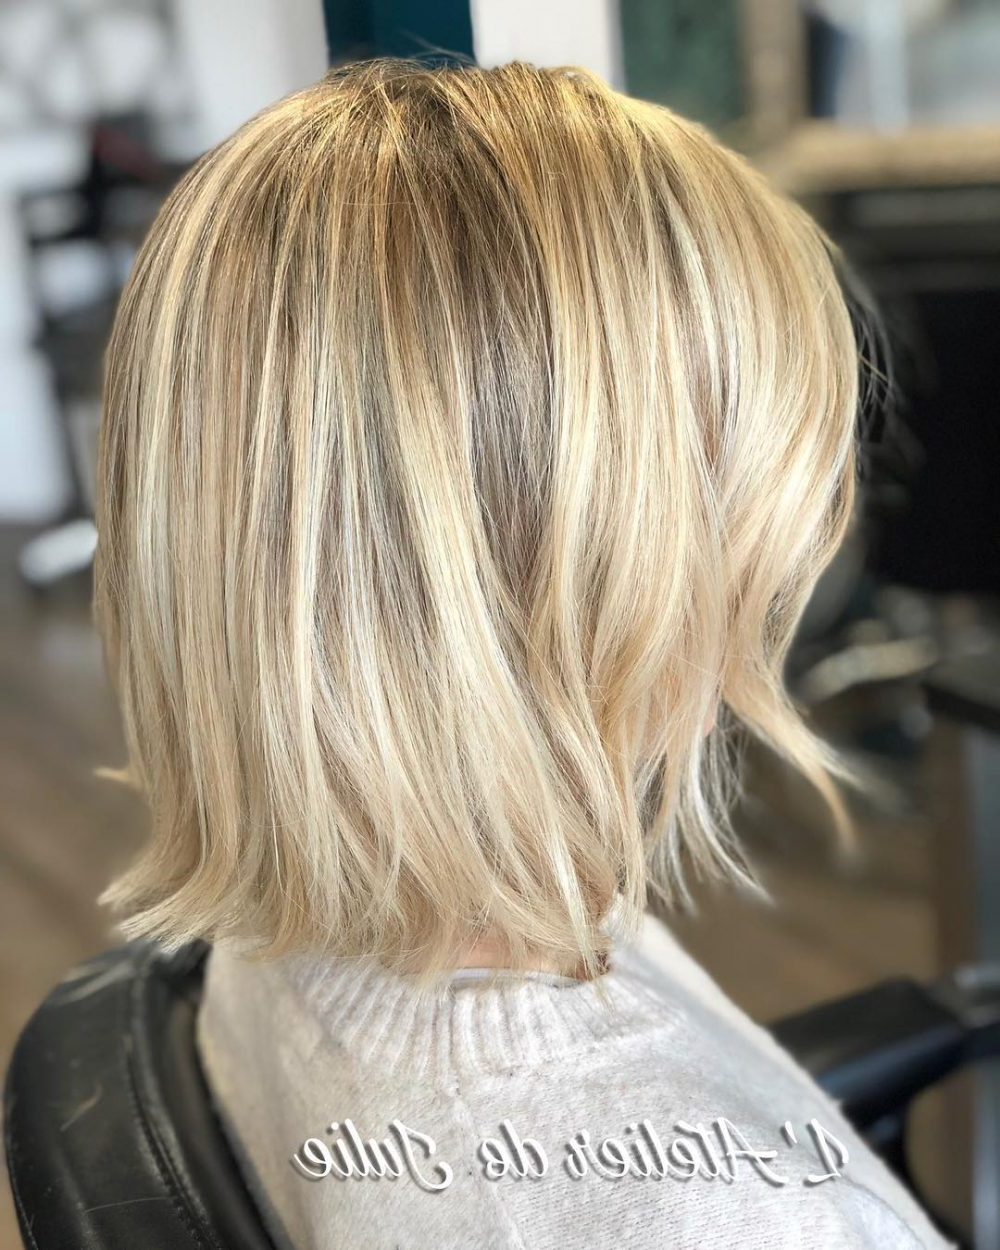 34 Perfect Short Haircuts And Hairstyles For Thin Hair (2018) Throughout Short Haircuts For Thin Wavy Hair (View 6 of 25)